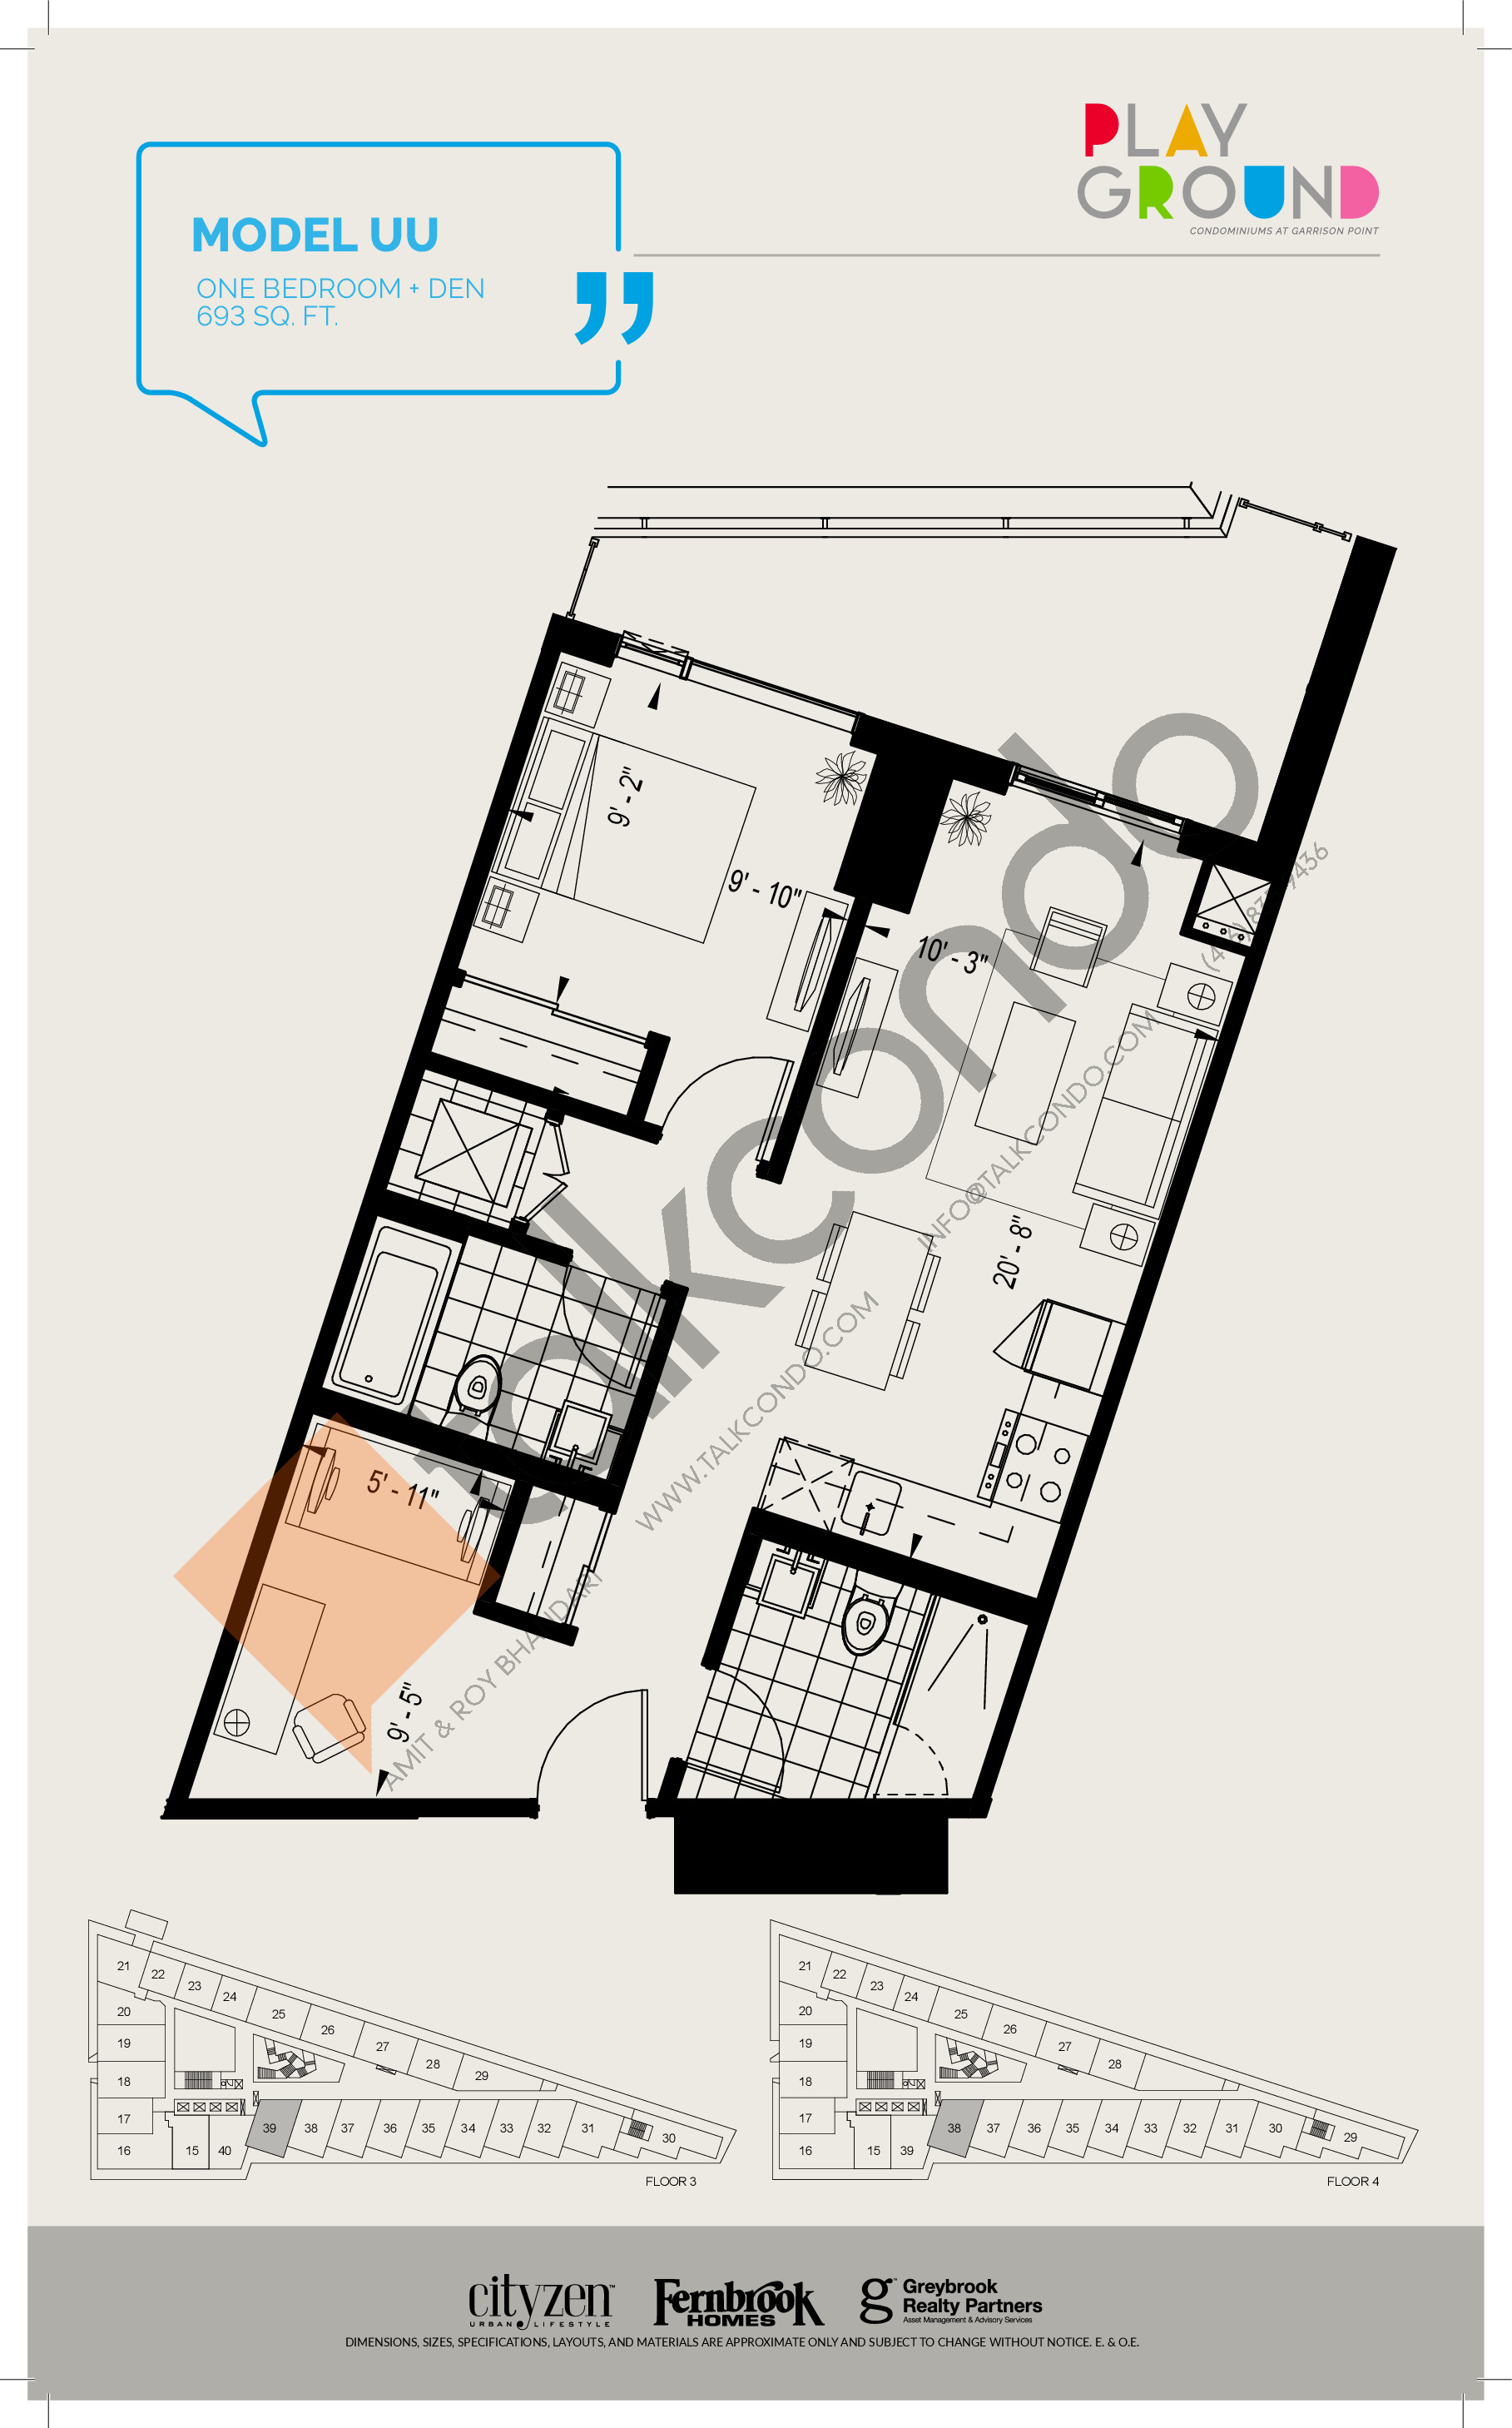 Model UU Floor Plan at Playground Condos at Garrison Point - 693 sq.ft